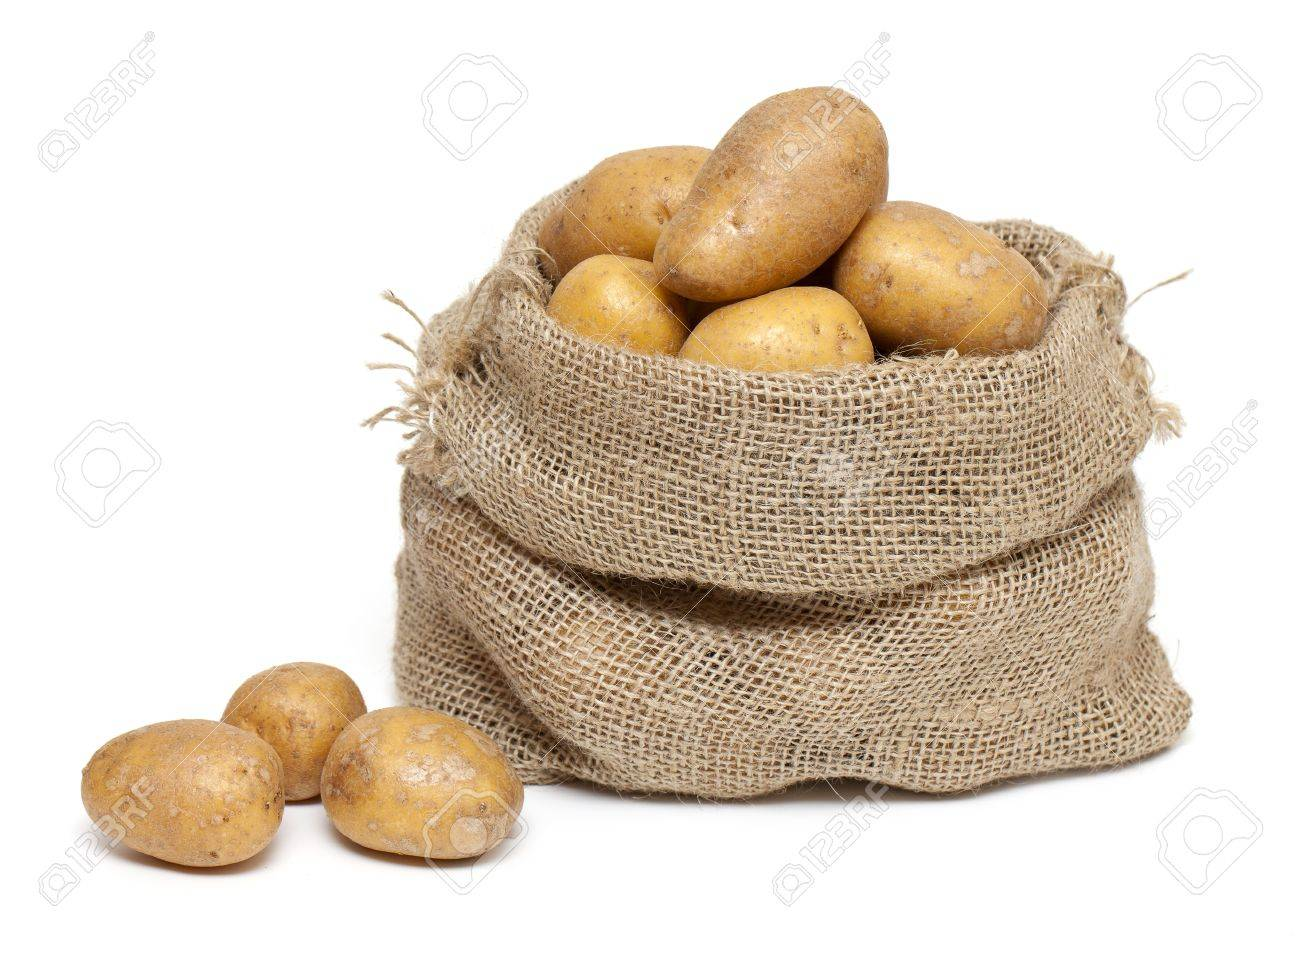 Potatoes In Burlap Bag Isolated On White Background Stock Photo